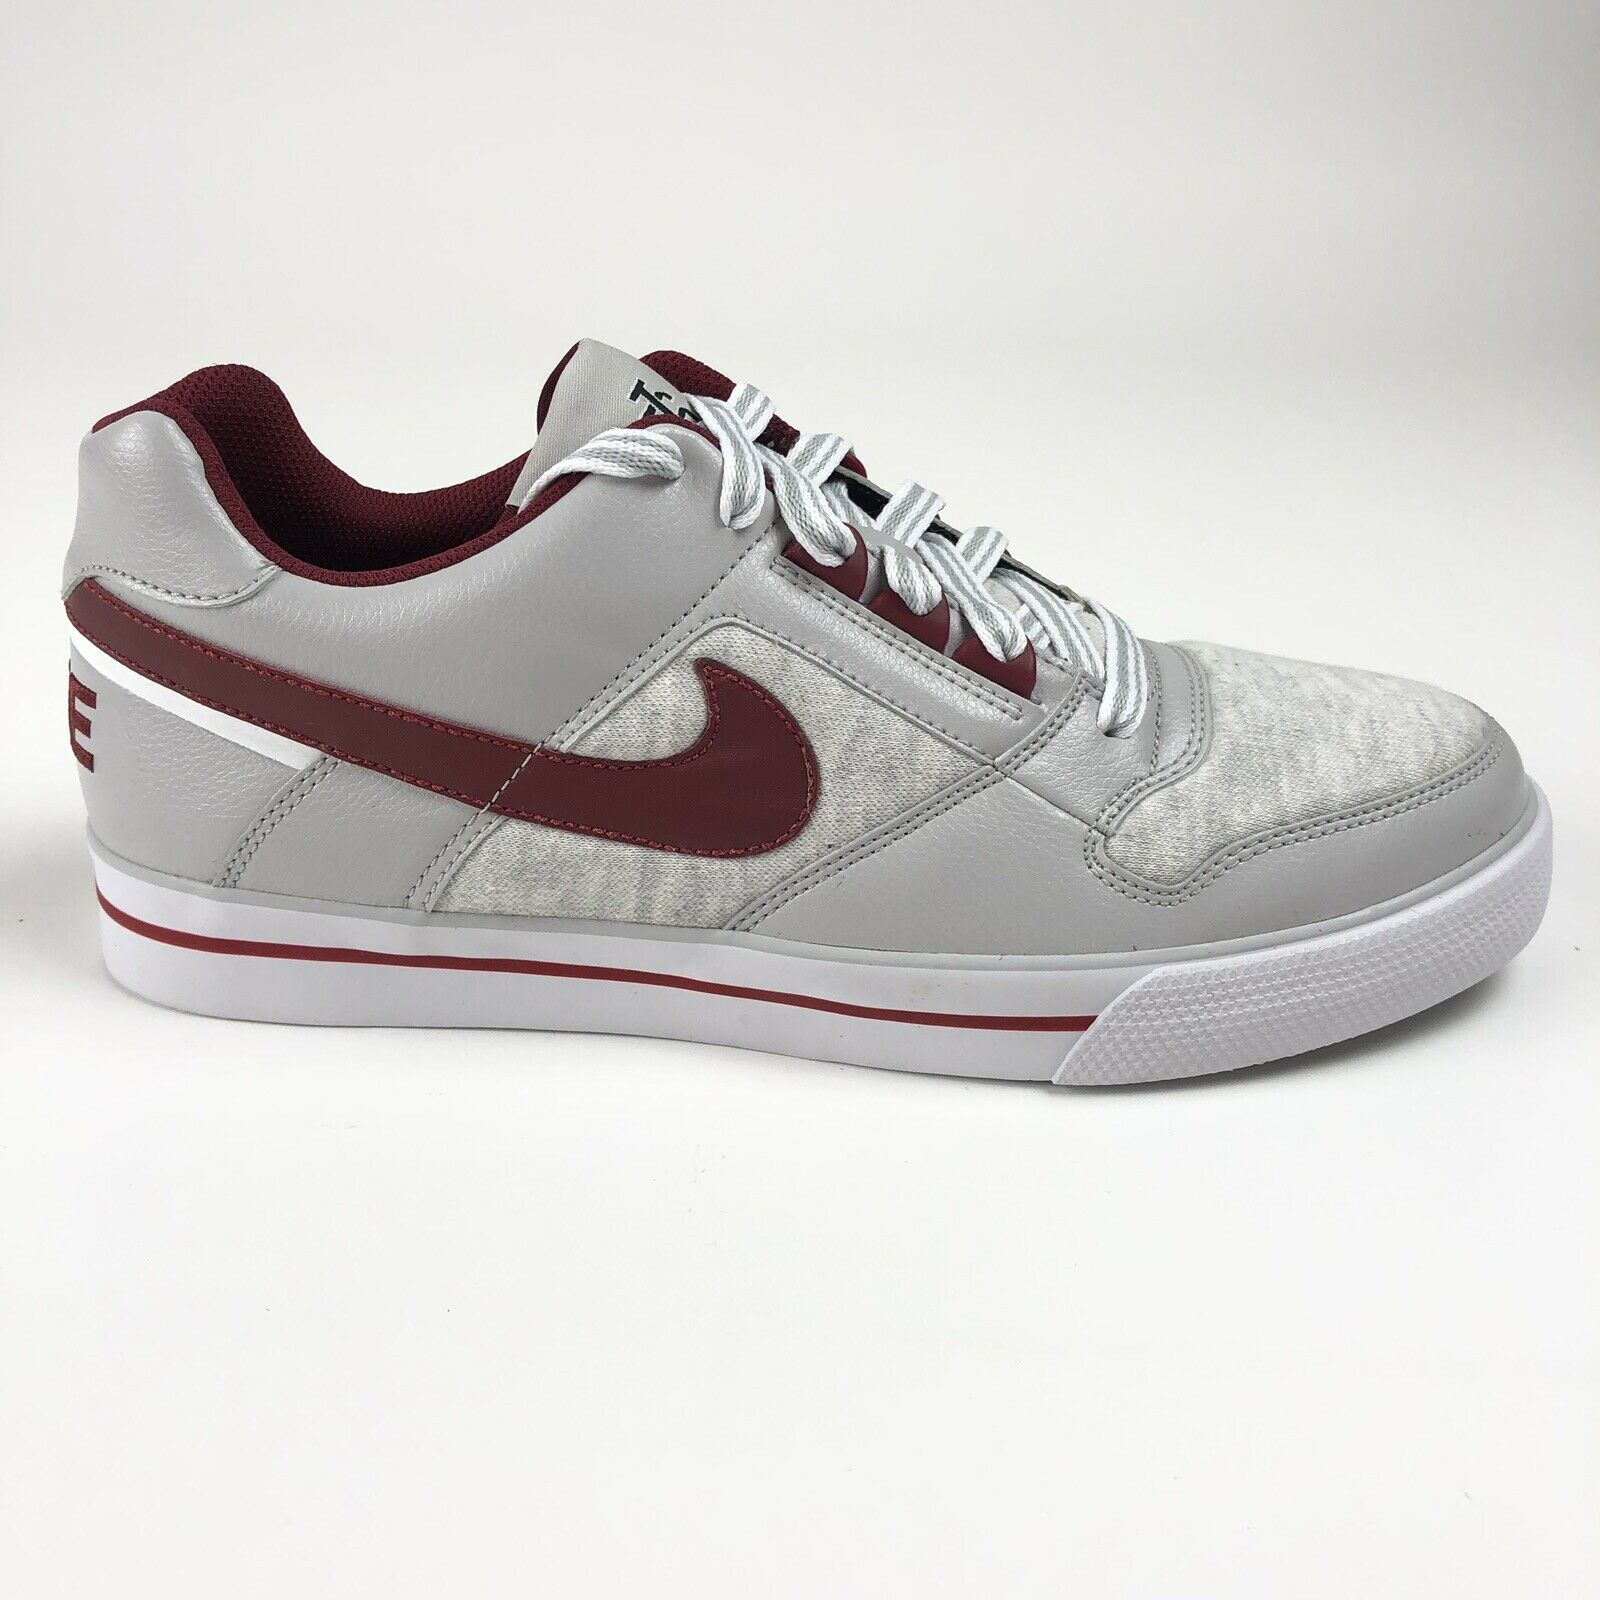 Nike Delta Force AC Mens 10 Low Top shoes White Team Red Neutral Grey 370543-101